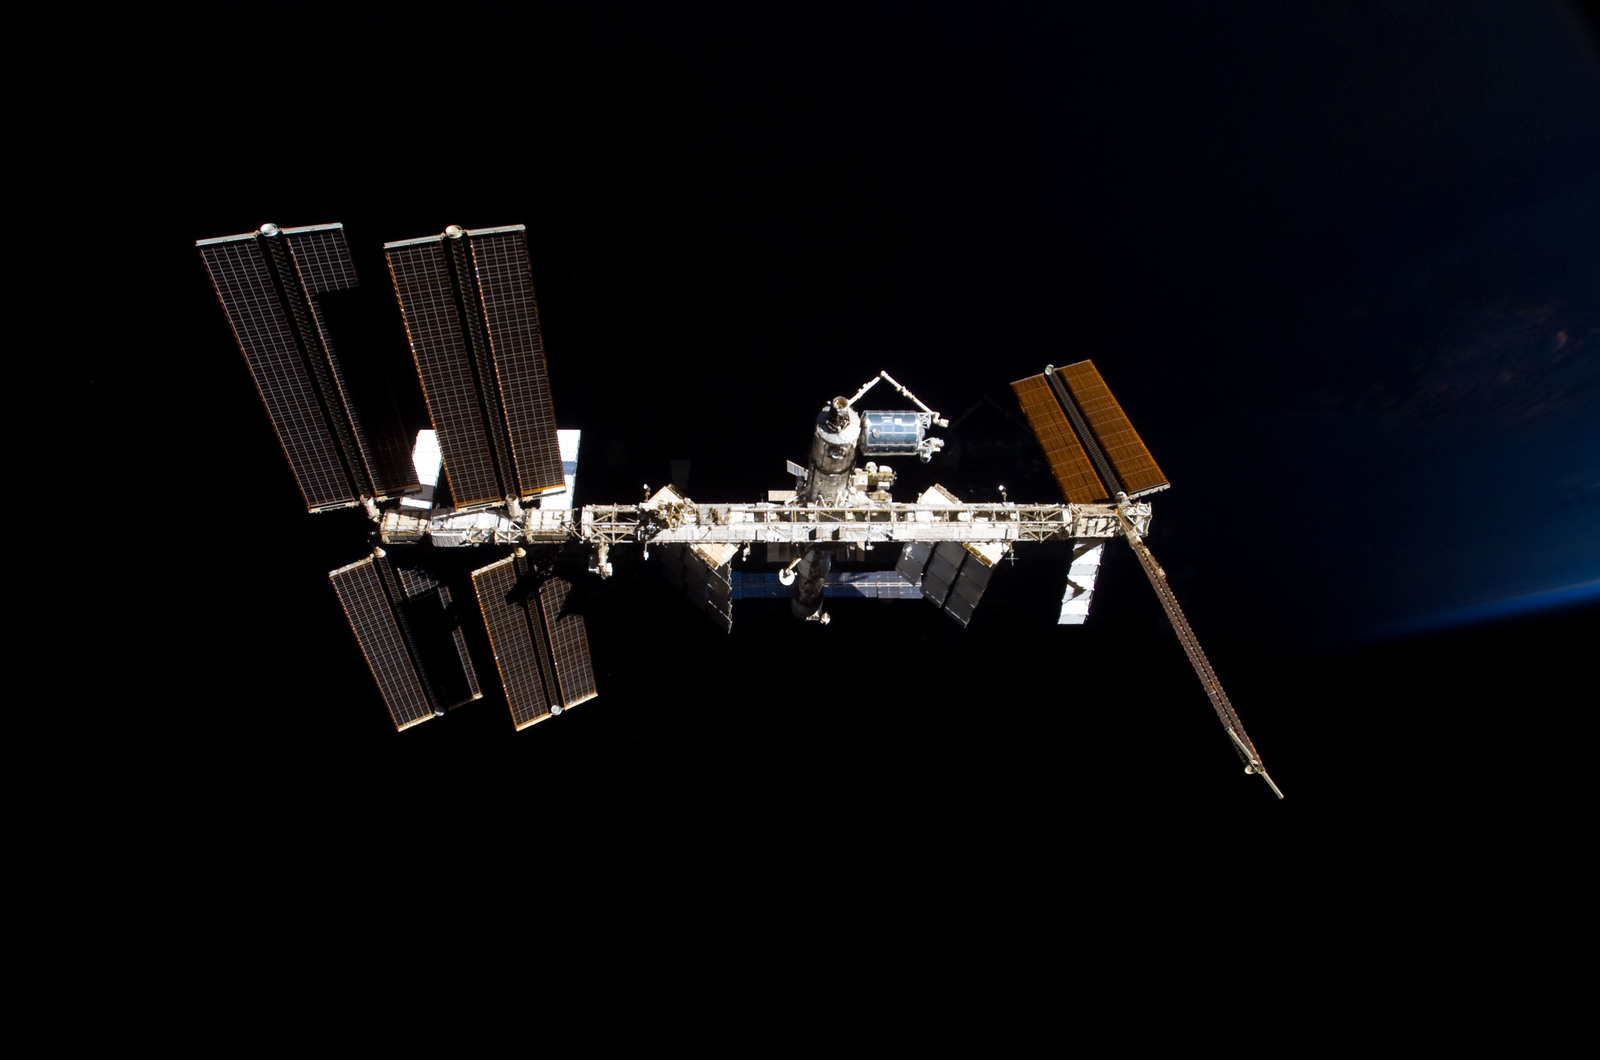 S122E009858 - STS-122 - View of ISS after STS-122 Undocking